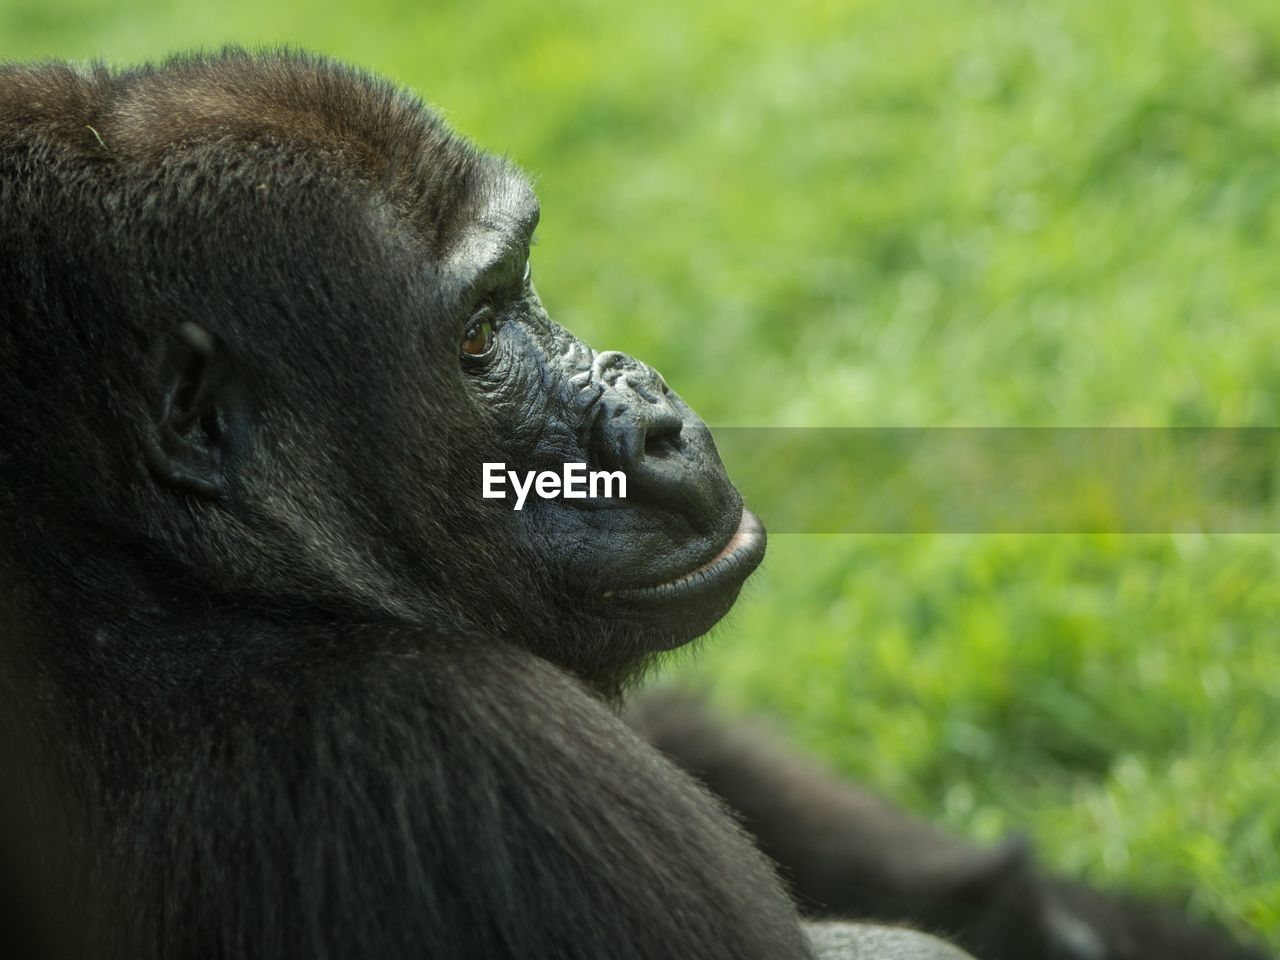 Side View Headshot Of A Gorilla Looking Away